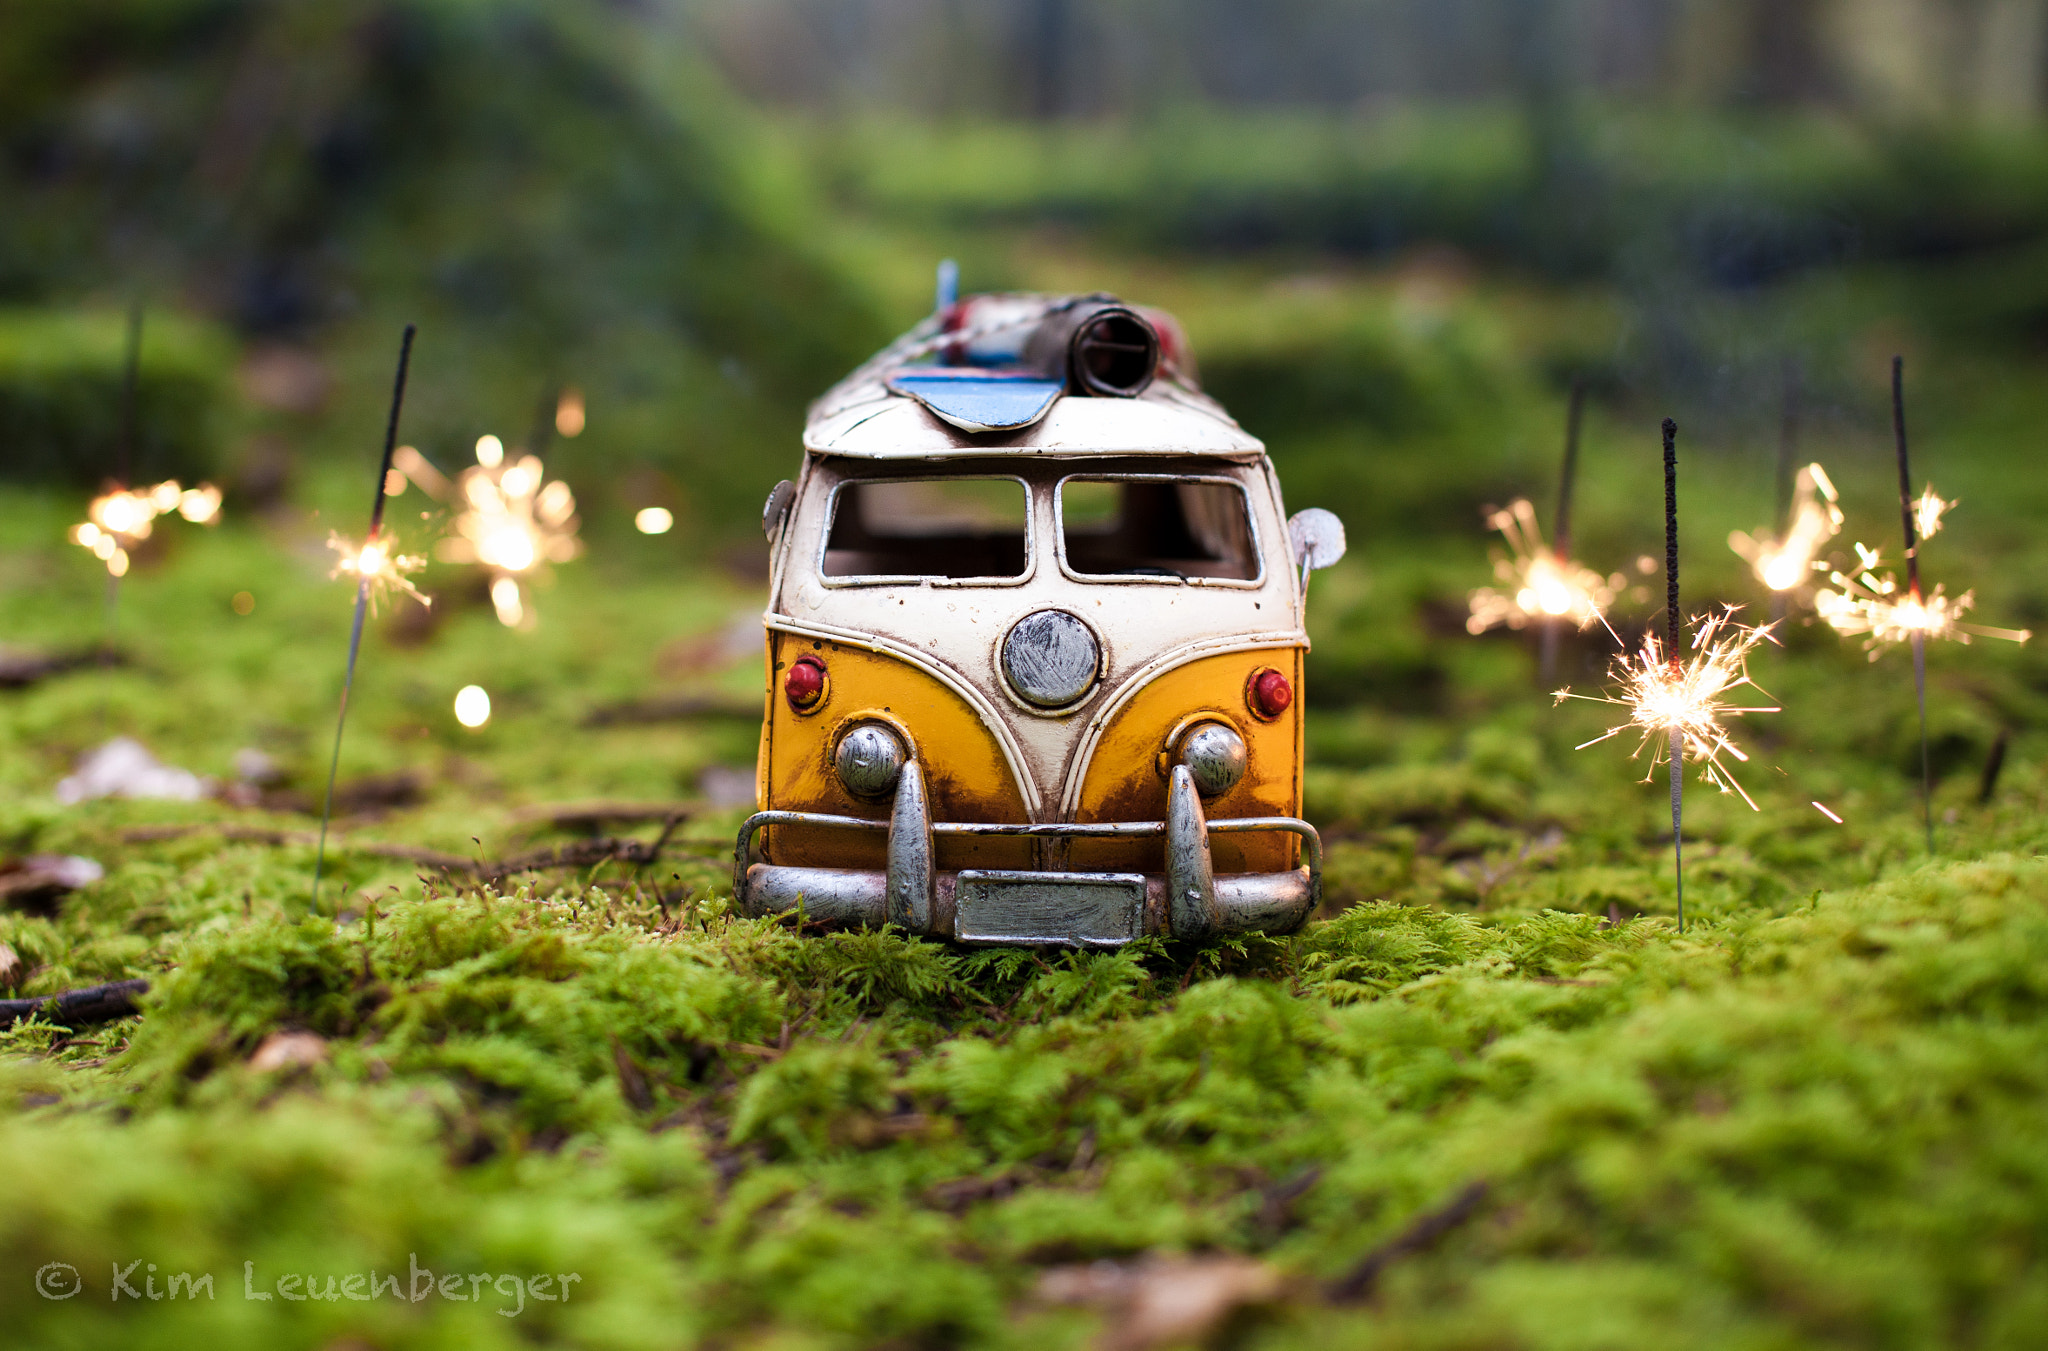 Photograph Could It Be Another Change? by Kim Leuenberger on 500px